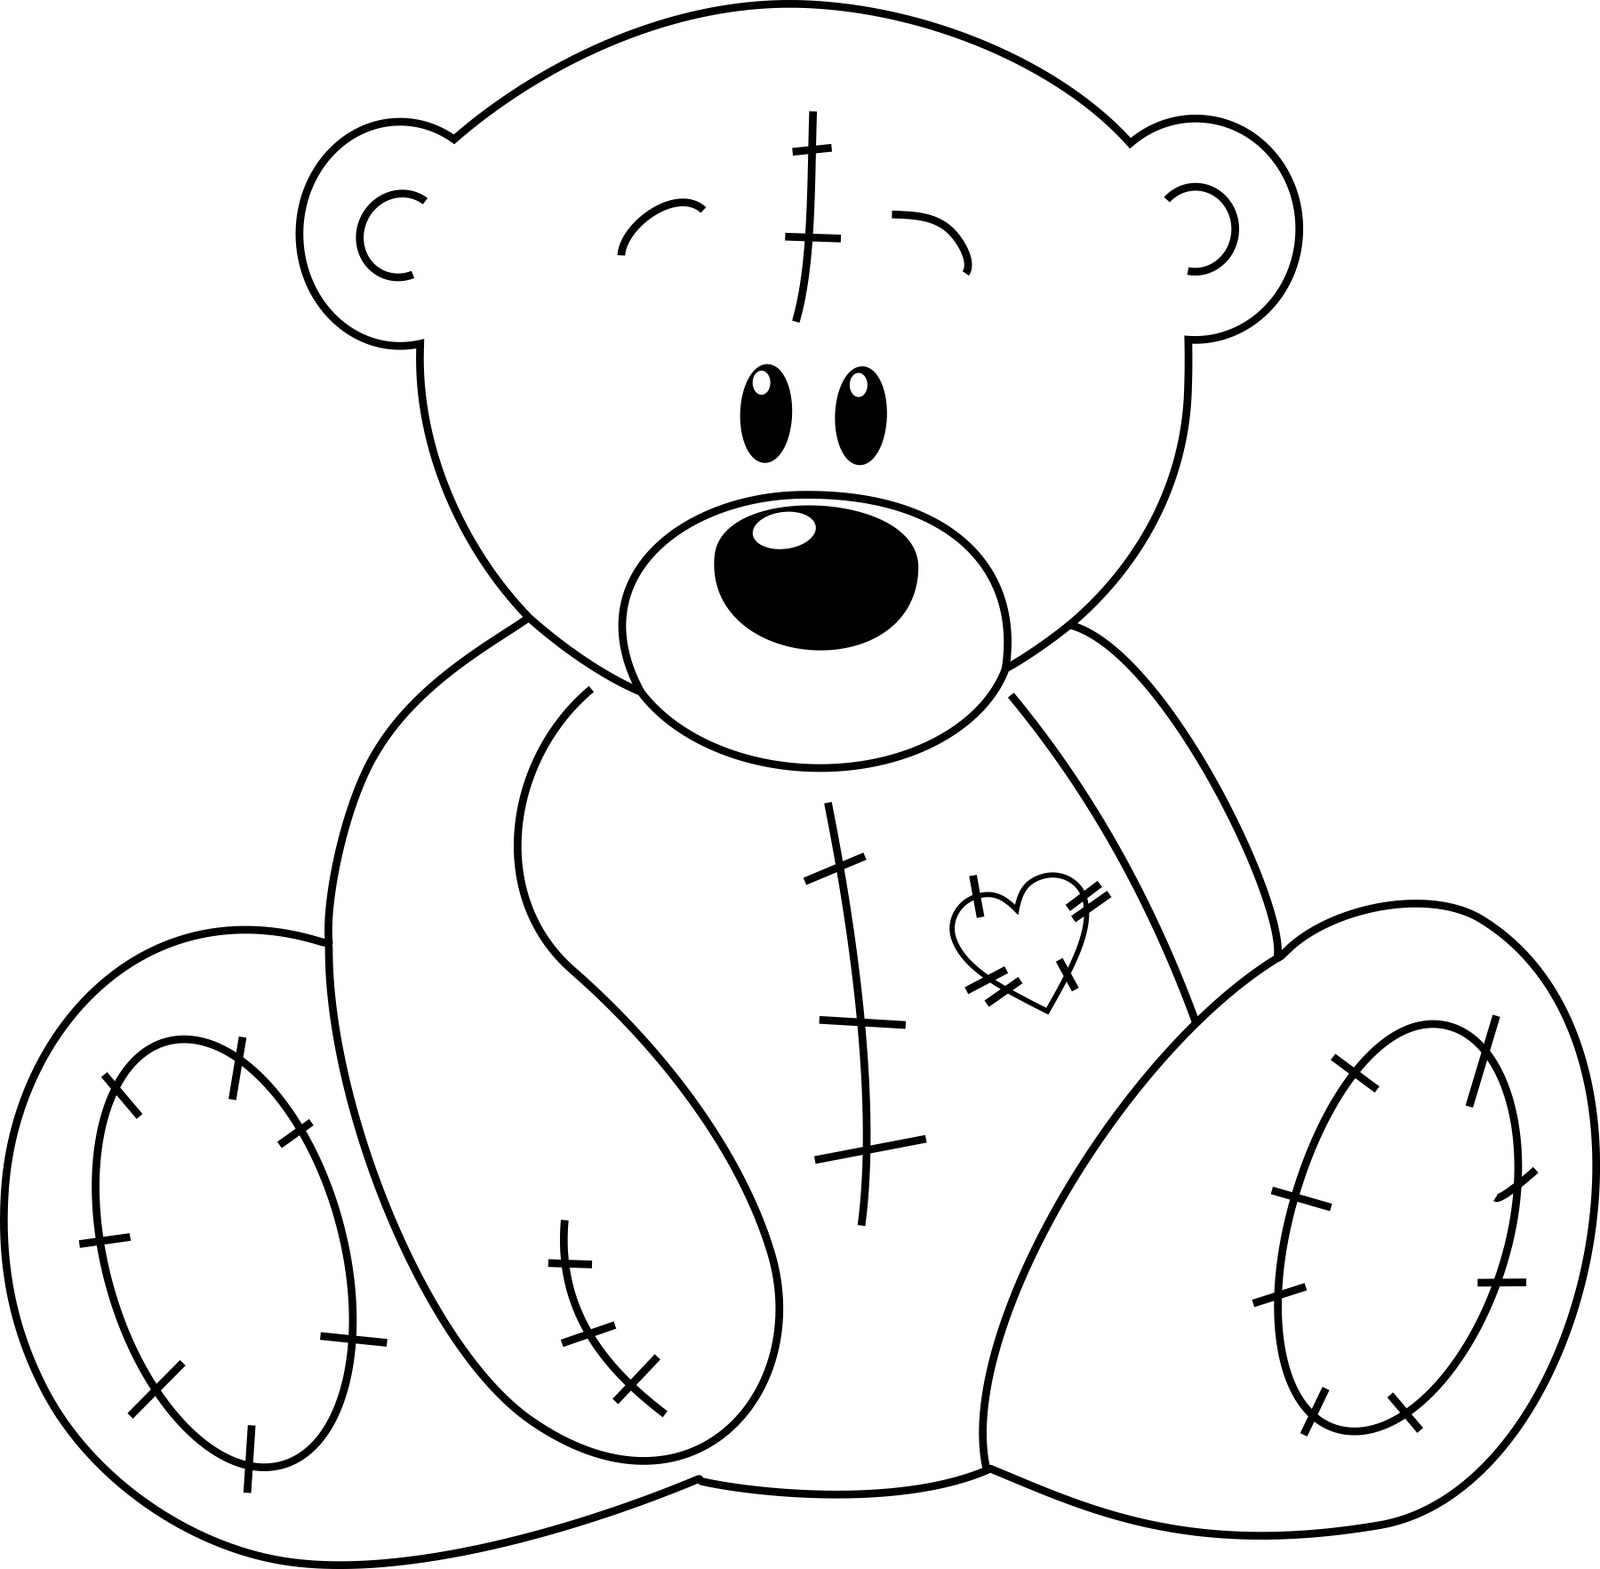 Outline Of Teddy Bear.